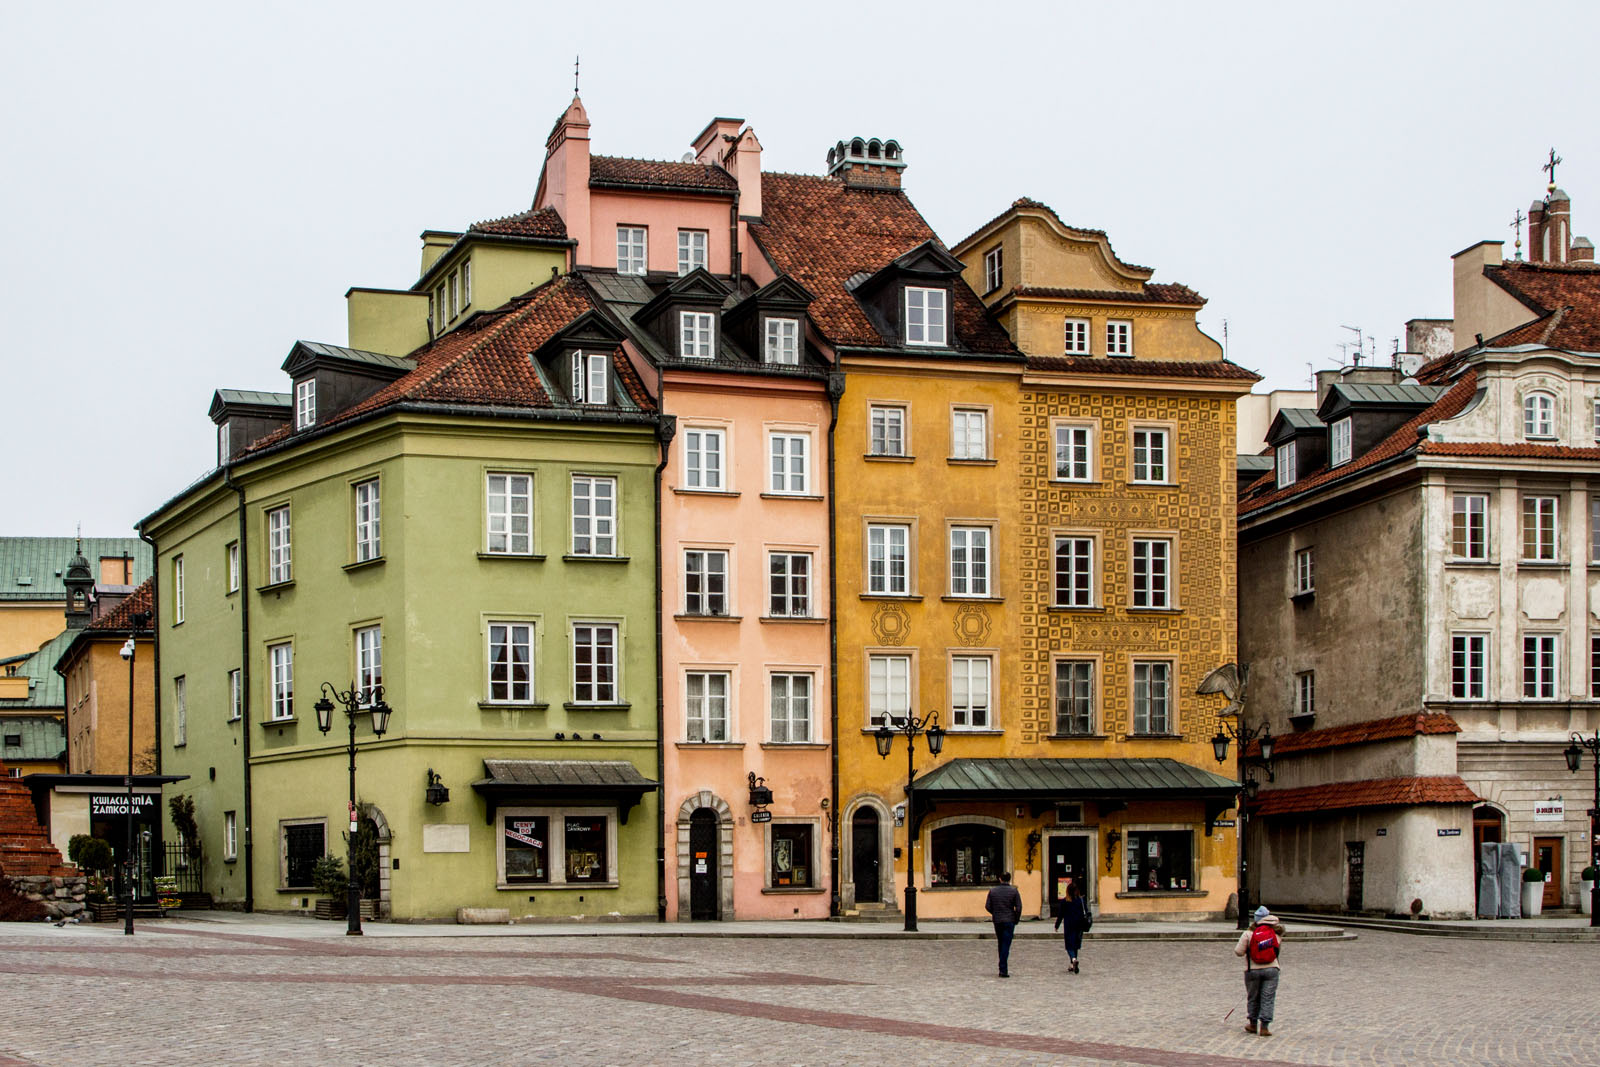 the Old Town has elements of Baroque, Gothic and neoclassical